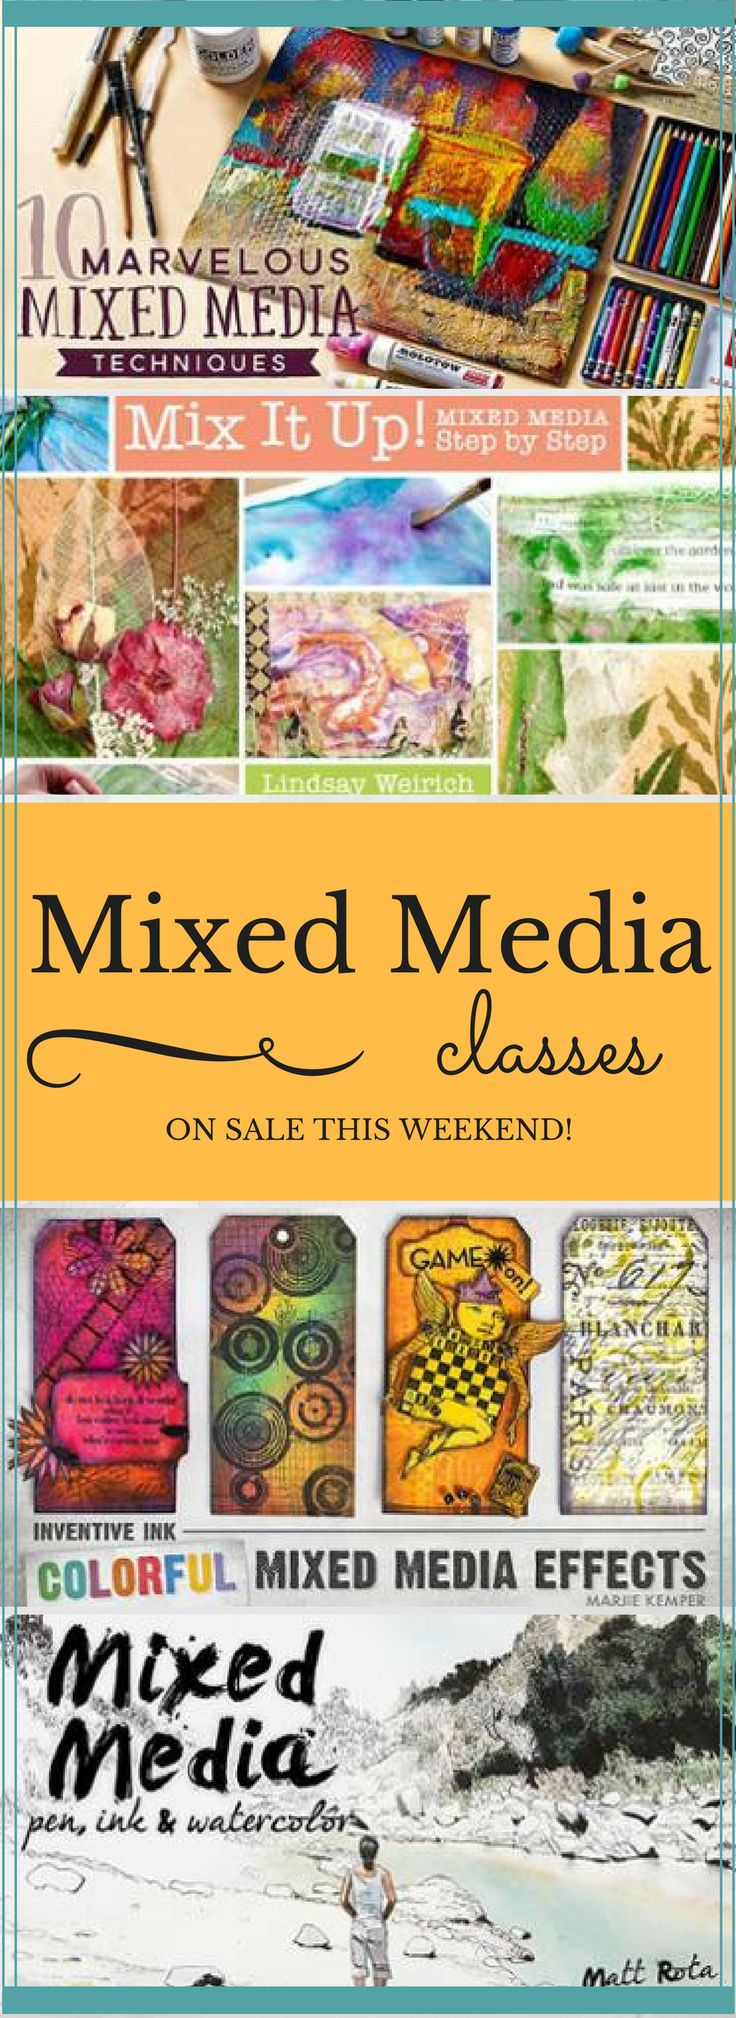 22 best online card making classes images on pinterest cardmaking every mixed media class is on sale at craftsy this weekend check out a wide kristyandbryce Choice Image